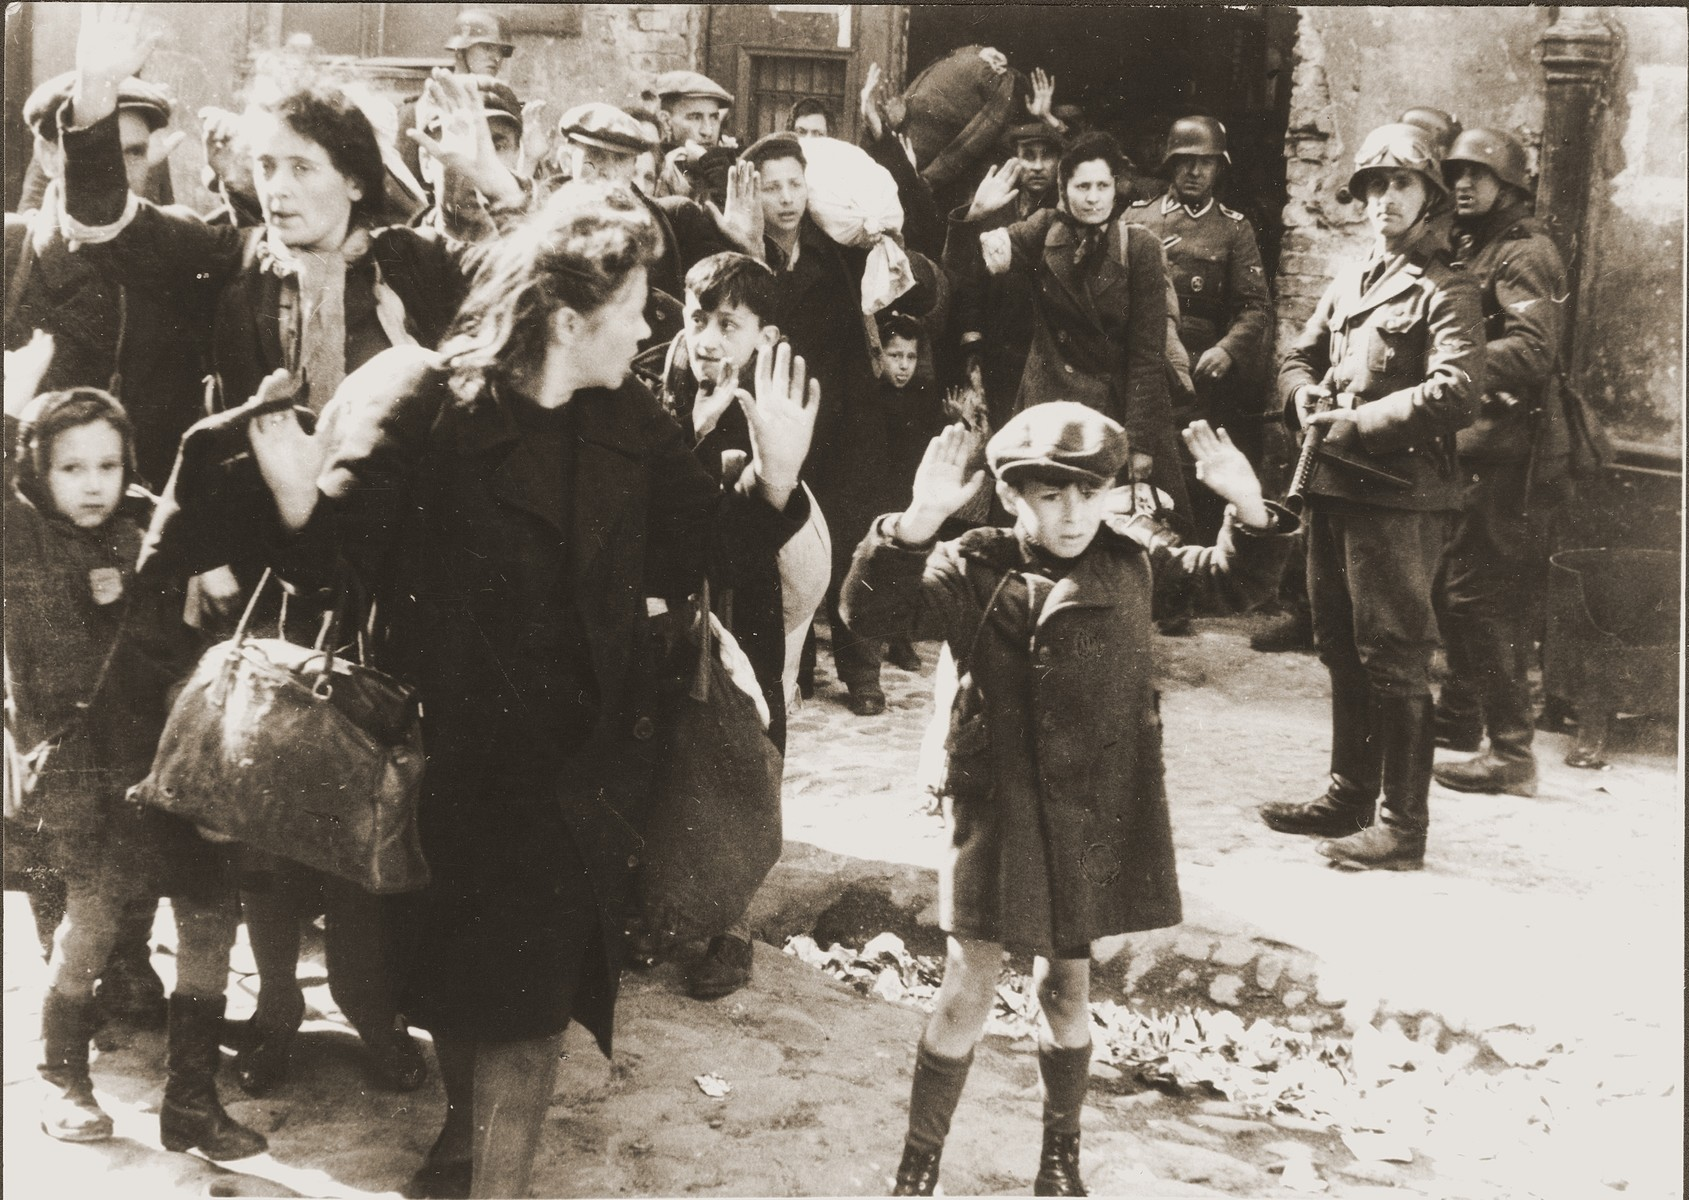 "Jews captured by SS and SD troops during the suppression of the Warsaw ghetto uprising are forced to leave their shelter and march to the Umschlagplatz for deportation.    The original German caption reads: ""Pulled from the bunkers by force.""  The SD trooper pictured second from the right, is SS-Rottenfuehrer Josef Bloesche, who was identified by Polish authorities using this photograph.  Bloesche was tried for war crimes by a Polish court in 1969, sentenced to death and executed in July of that year.    The little girl on the left has been identified as Hanka Lamet, who is standing next to her mother, Matylda Lamet Goldfinger (the woman second from the left).  The boy carrying the sack has been identified as Leo Kartuzinsky and the woman in the front has been identified as Chana Zeilinwarger.  Numerous people have identified the boy in the foreground as either Arthur Domb Semiontek, Israel Rondel, Tsvi Nussbaum or Levi Zeilinwarger, but none of these identifications can be conclusively corroborated.  Original caption from donated photograph reads:  ""The following pictures are copies of the book conaning the report of the German commander who was responsible for cleaning out that ghetto in Warsaw, Poland.  This report, in the form of a leather bound book, was presented as evidence by the U.S. prosecution, Maj. Frank Walsh, at the international tribunal trials at Nurnberg, Germany."""